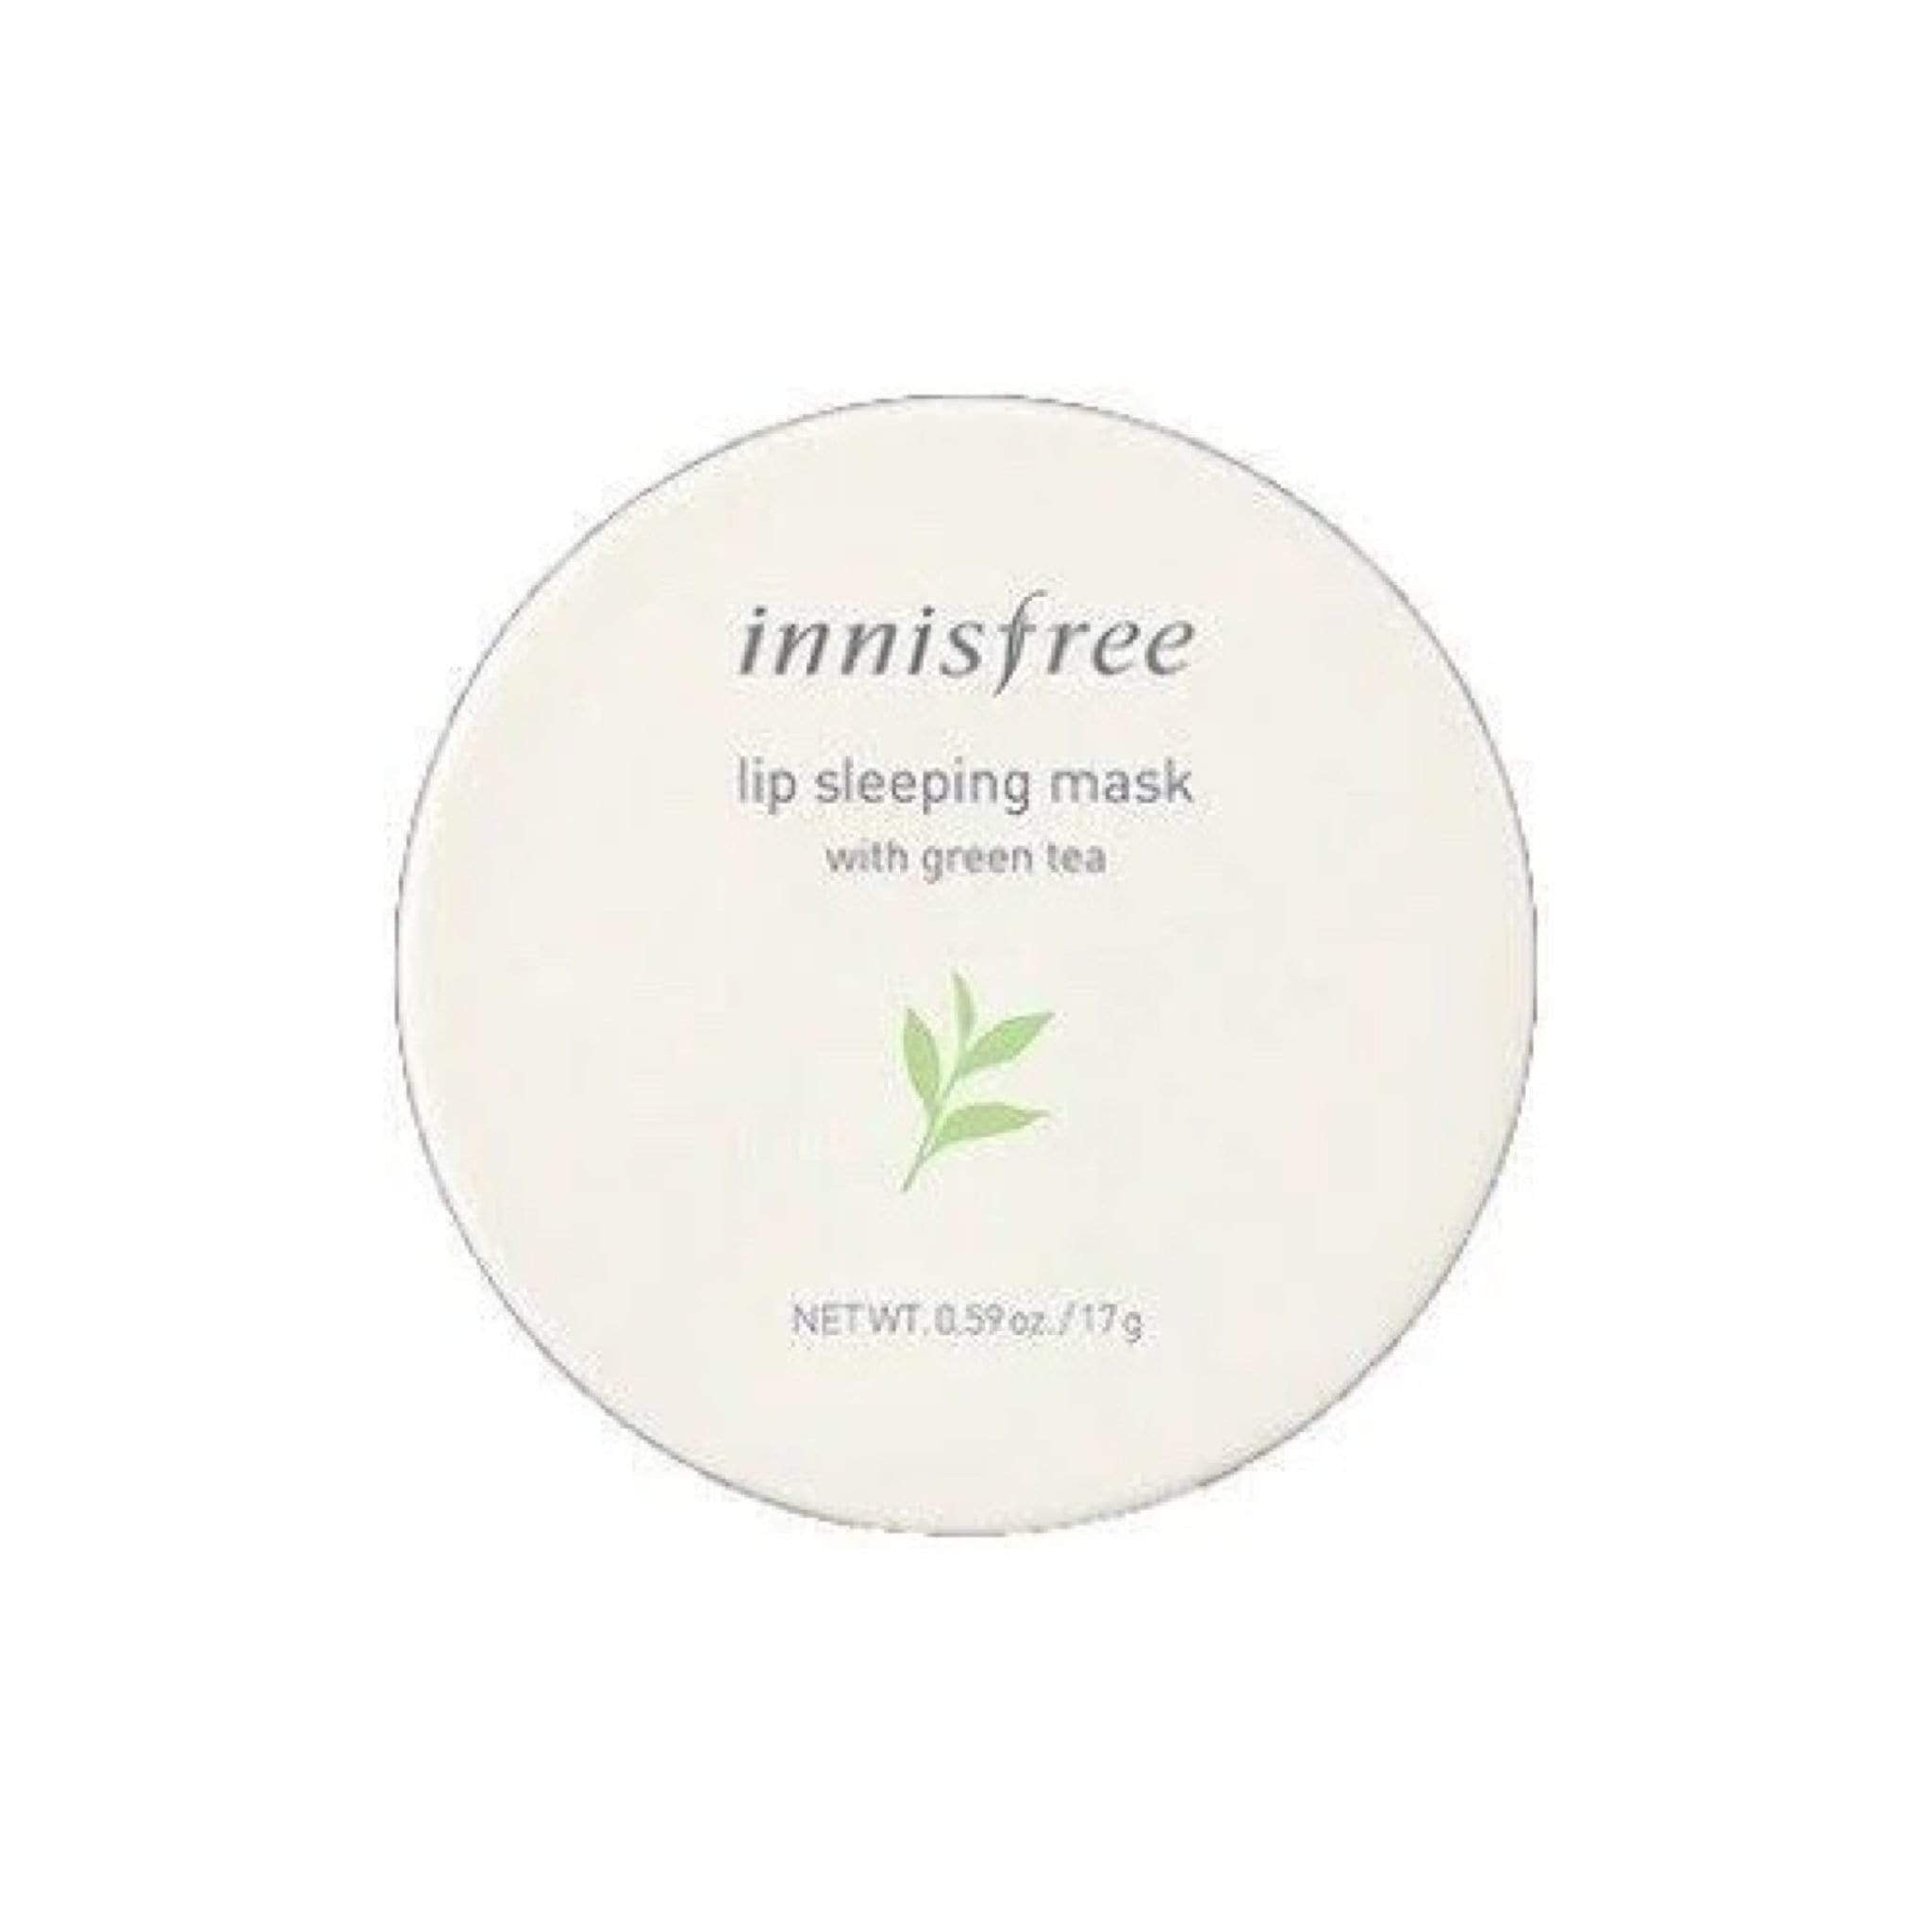 Innisfree Lip Treatment INNISFREE Green Tea Hydrating Lip Sleeping Mask, 0.59 oz/17 g